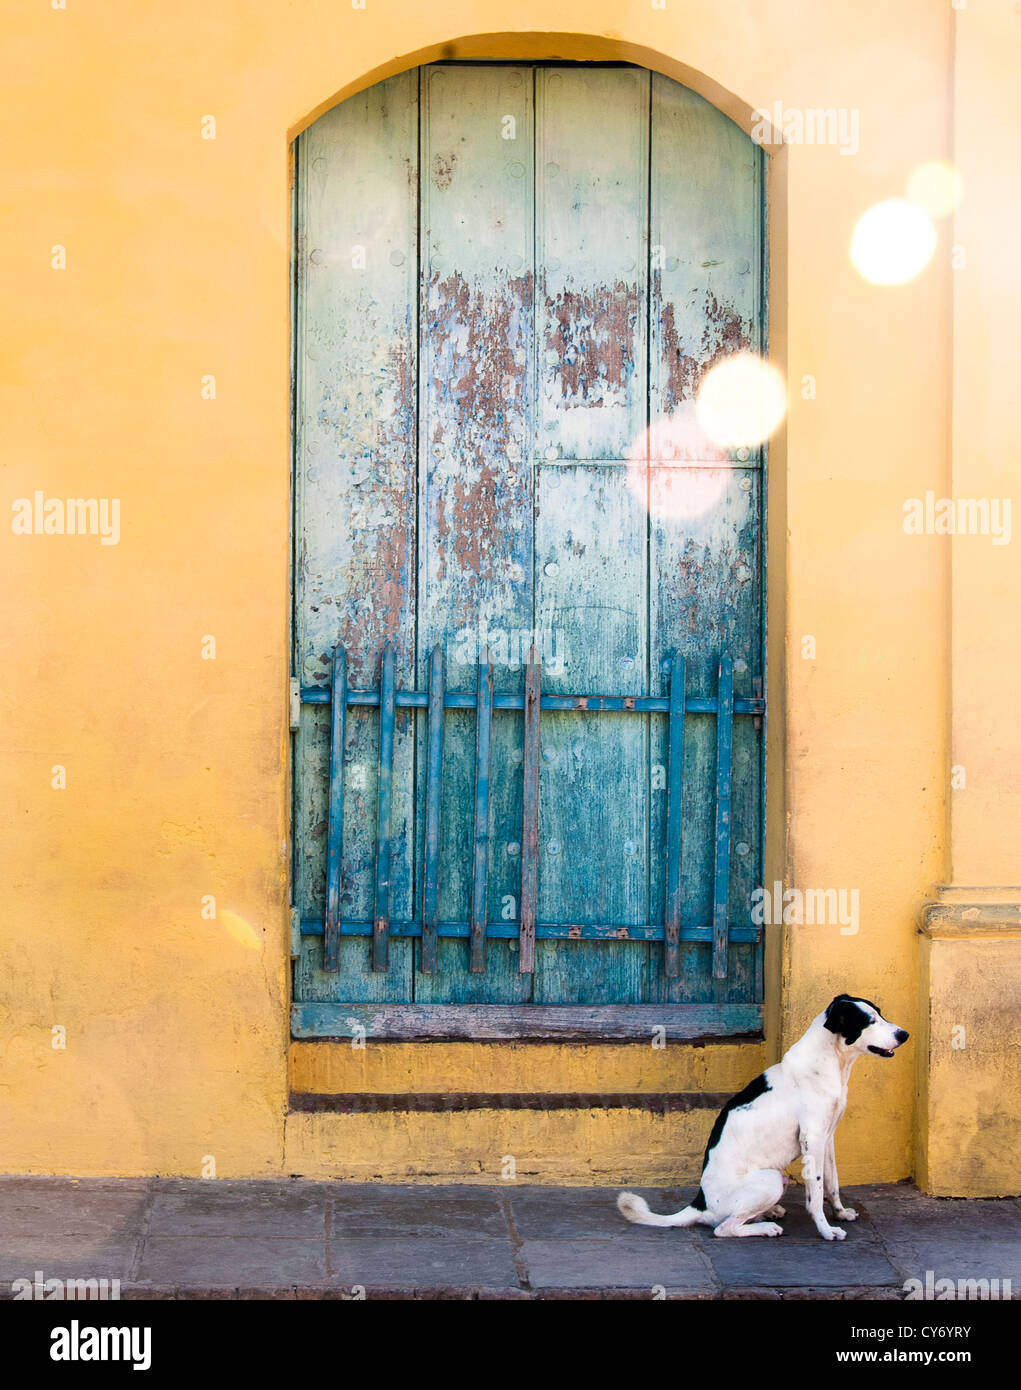 A small white dog sitting on the pavement in front of a faded bluey green wooden window in a bright ocher painted - Stock Image